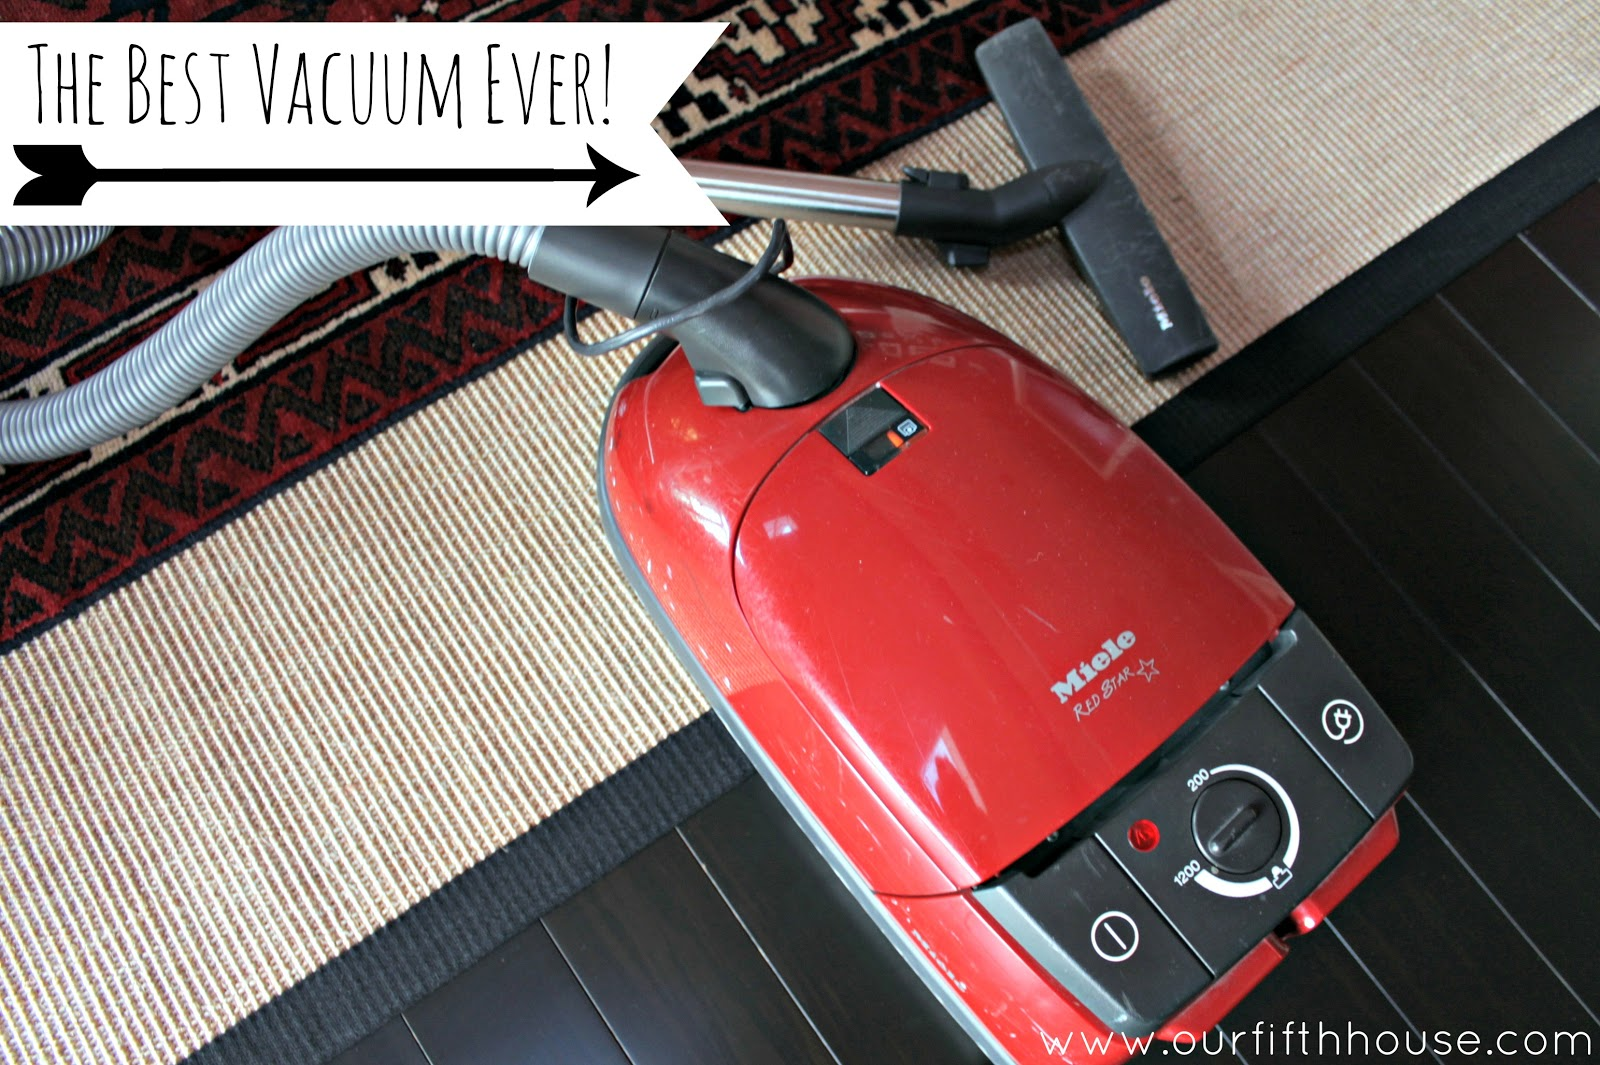 Best Hardwood Floor Vacuum vacuuming hardwood floors can be a hassle for some of the best brand names of vacuums the suction force creates a blowing mechanism that drives dirt away Miele Red Star Vacuum Cleaner